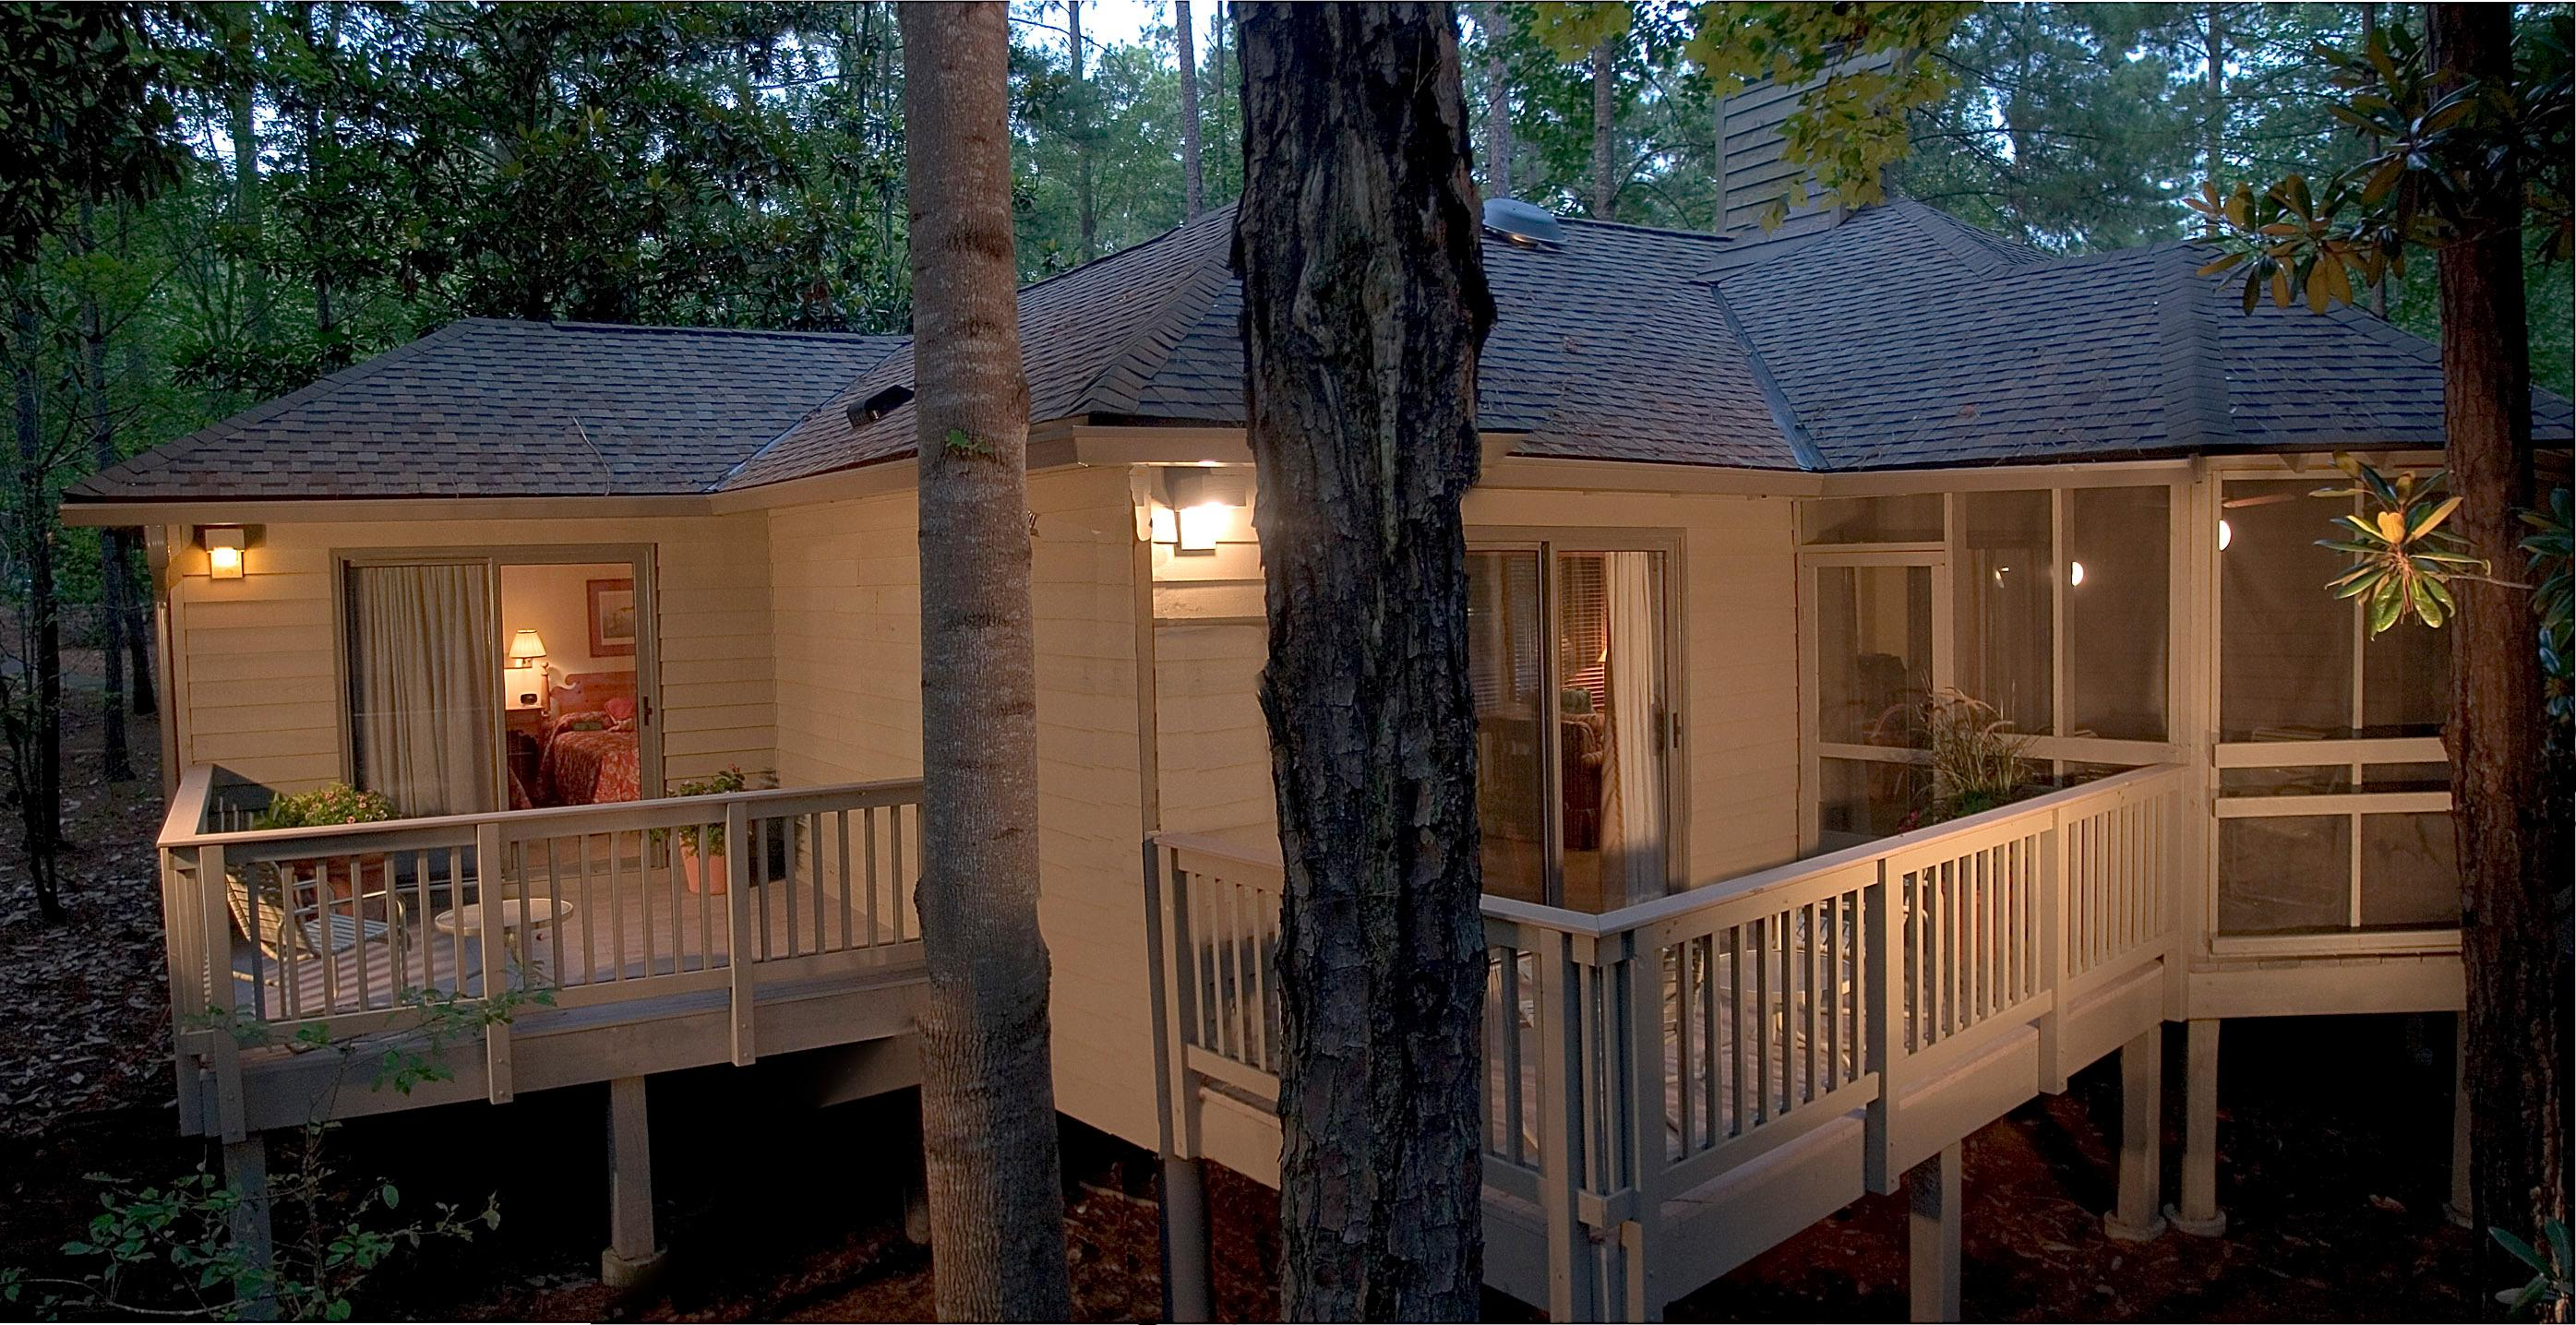 Cottages & Cabins near: 8109 N. Service Road 20, Big Spring, TX ...